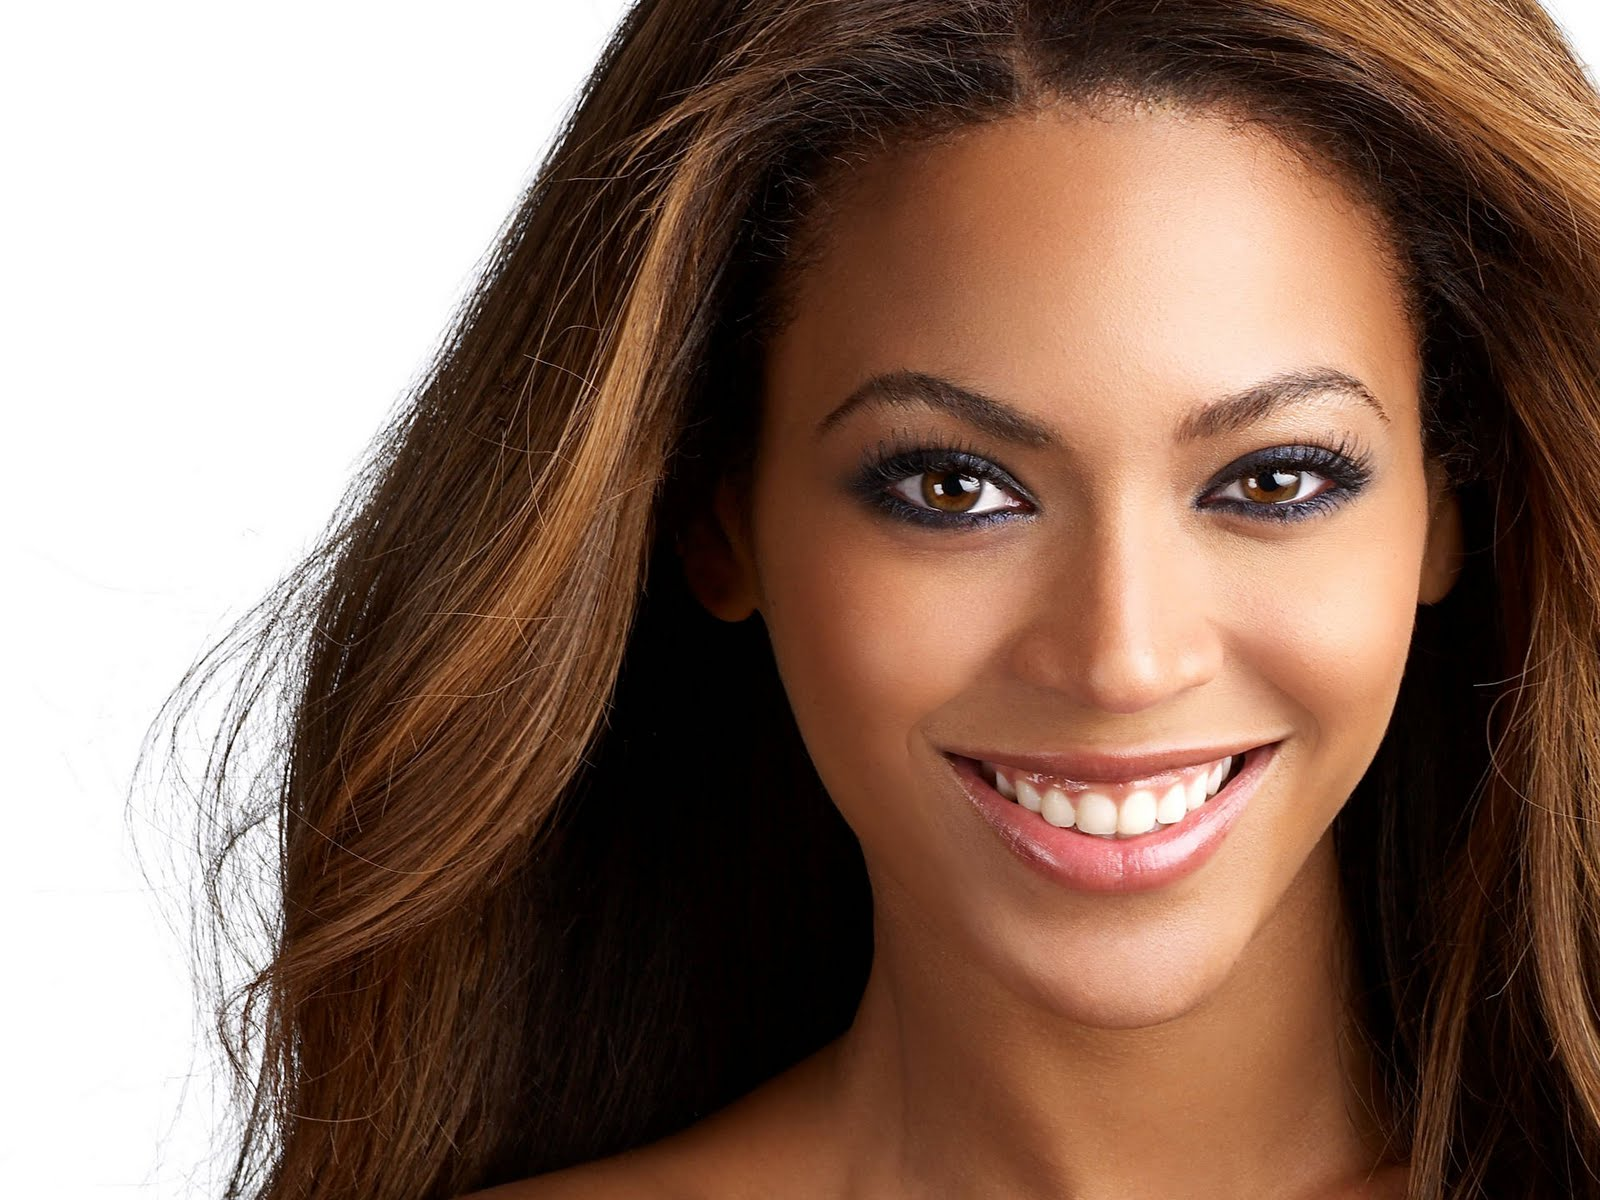 http://4.bp.blogspot.com/-qu84Khh3nnk/TmSrq62lZfI/AAAAAAAAAyw/D2y1cxzq2CE/s1600/Beyonce+Knowles+Photo+Gallery+%252824%2529.jpg